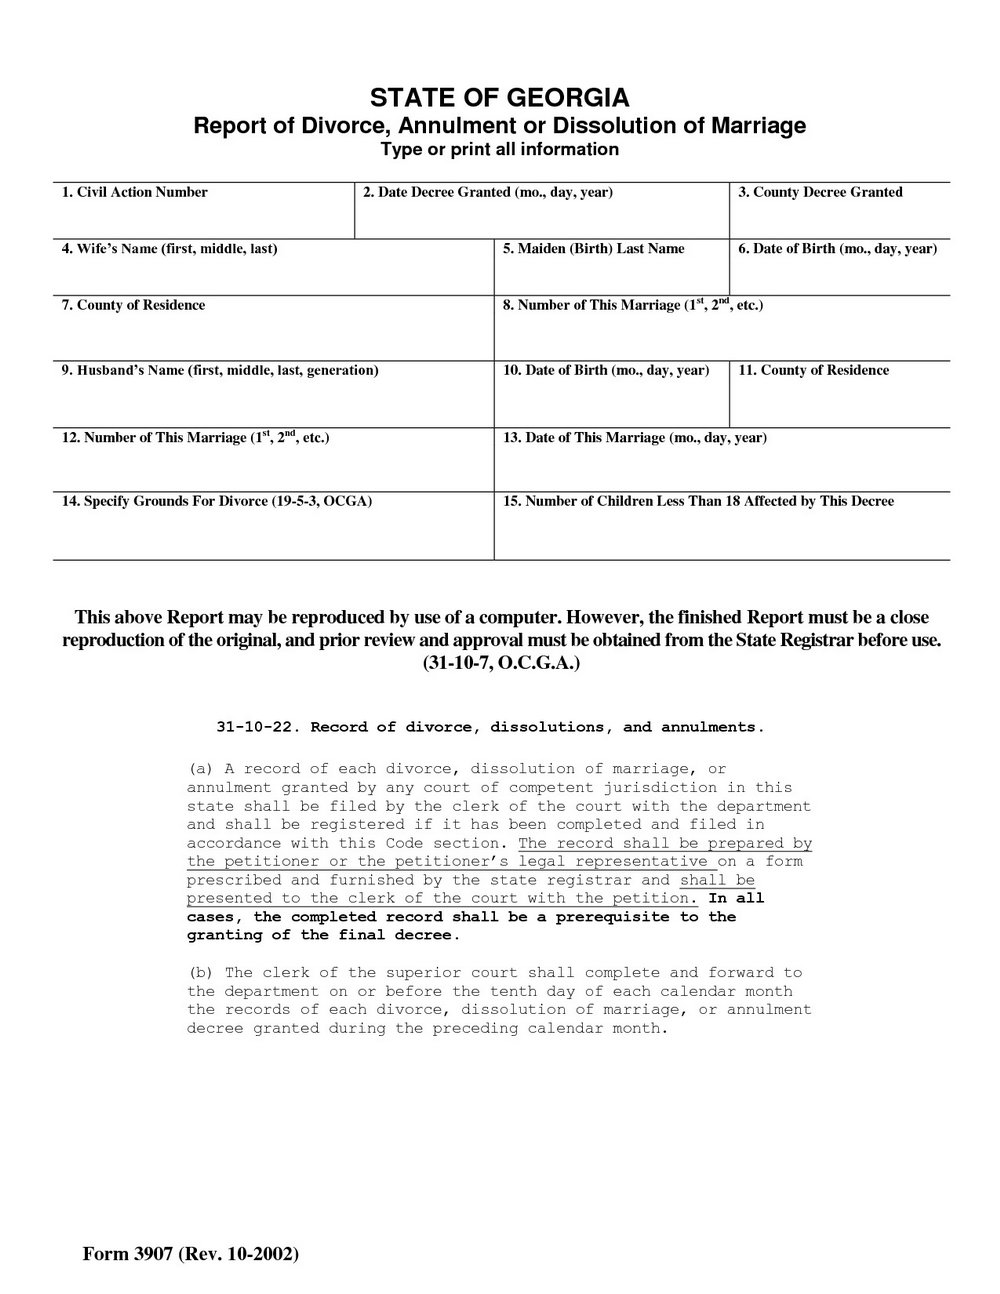 Florida Divorce Forms Broward County